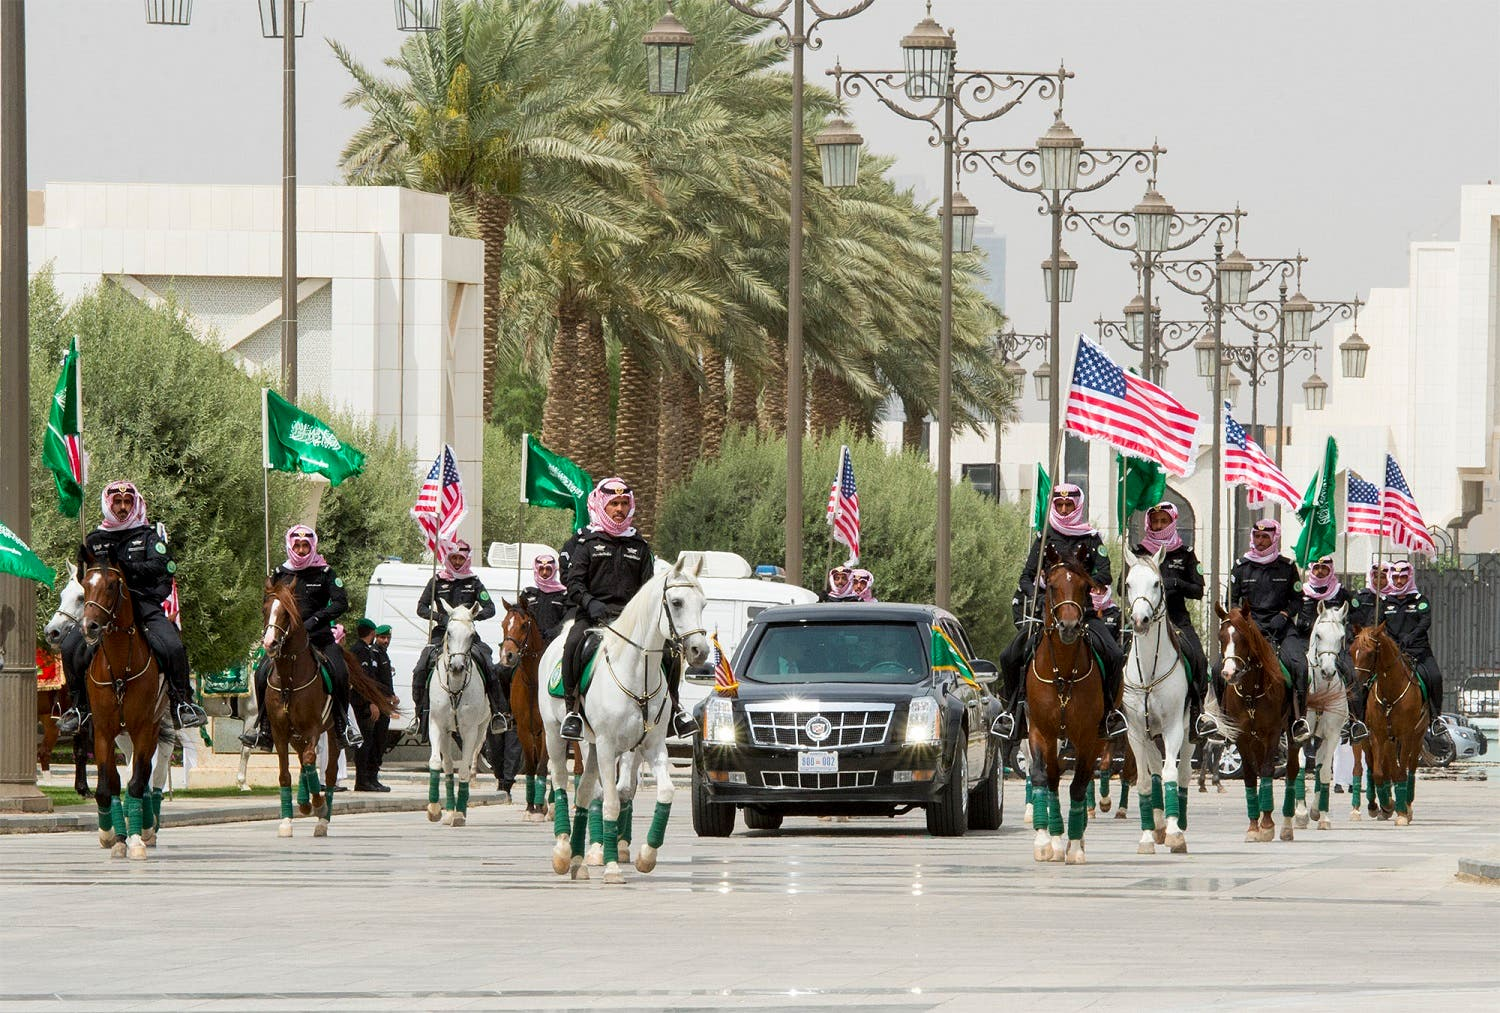 As the American president's car entered the Royal Court gate, it was accompanied by Saudi cavalryman wearing the official Saudi dress riding original Arabian horses. (Supplied)